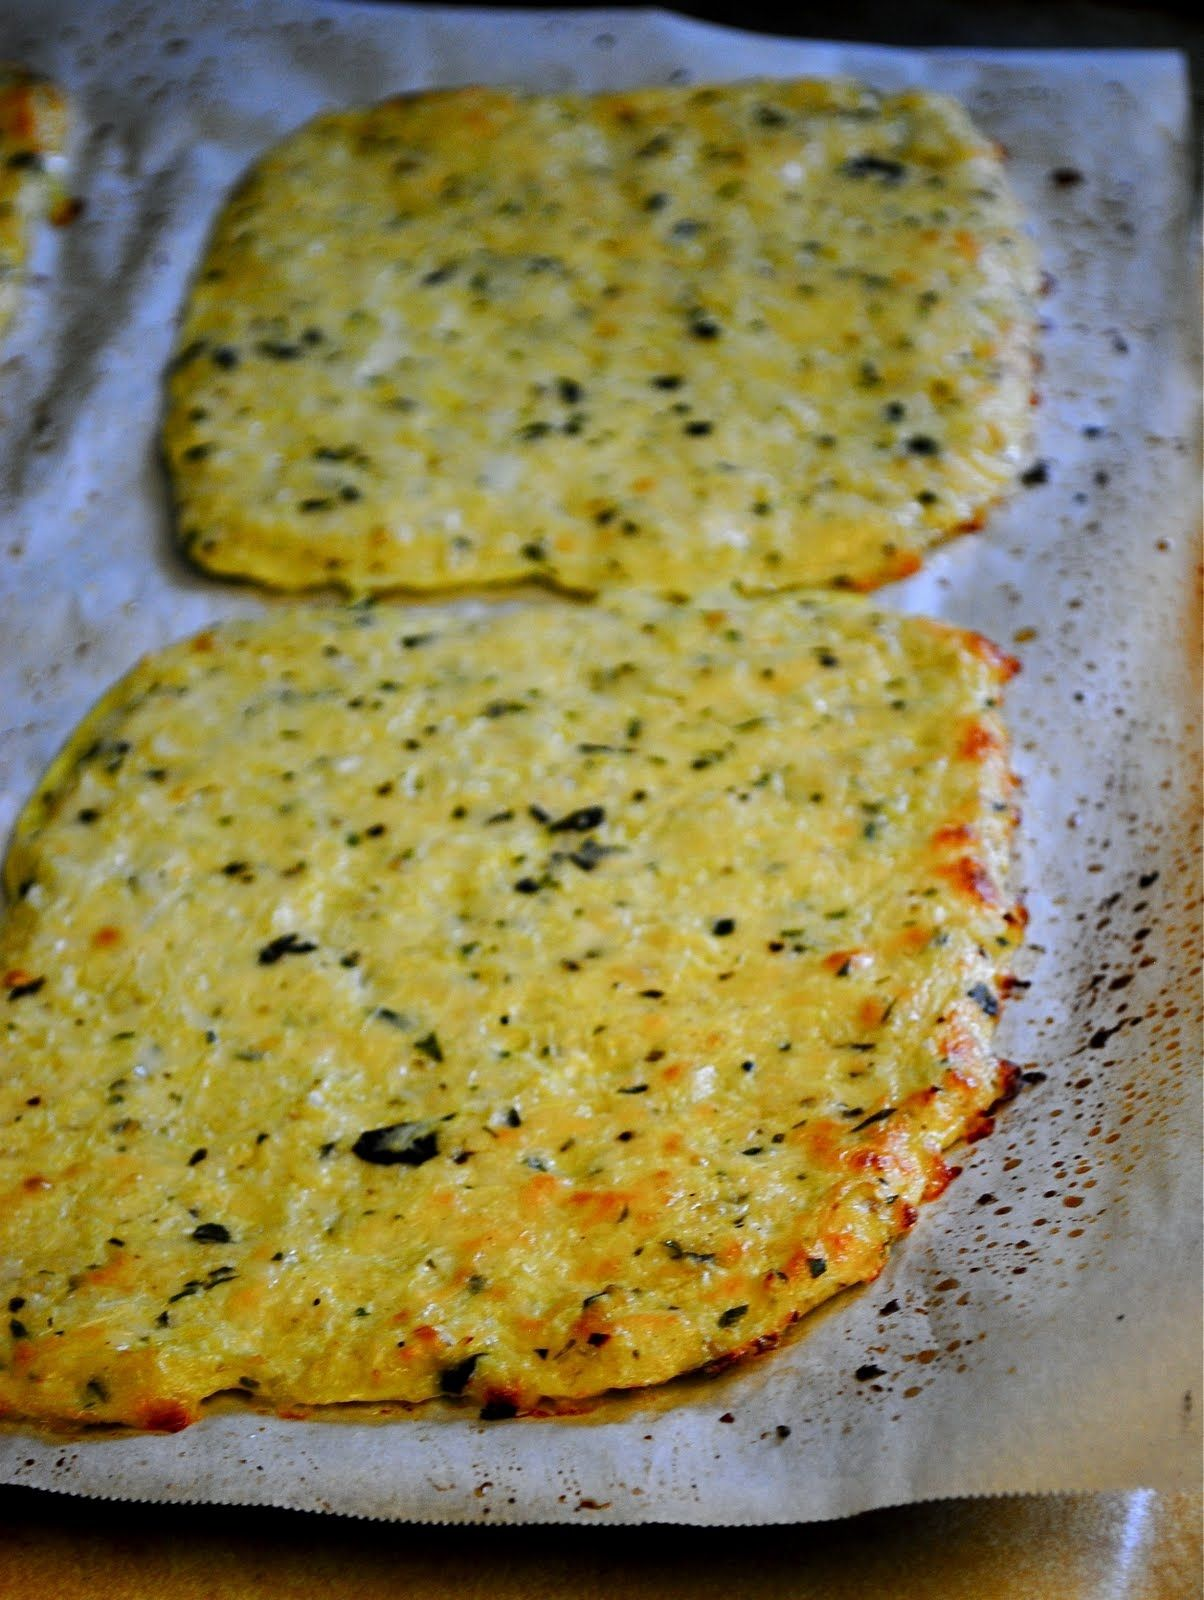 Cauliflower Pizza Crusts (or bake just for cutting into pieces in order to eat low carb dips - would be an excellent replacement for bread!)